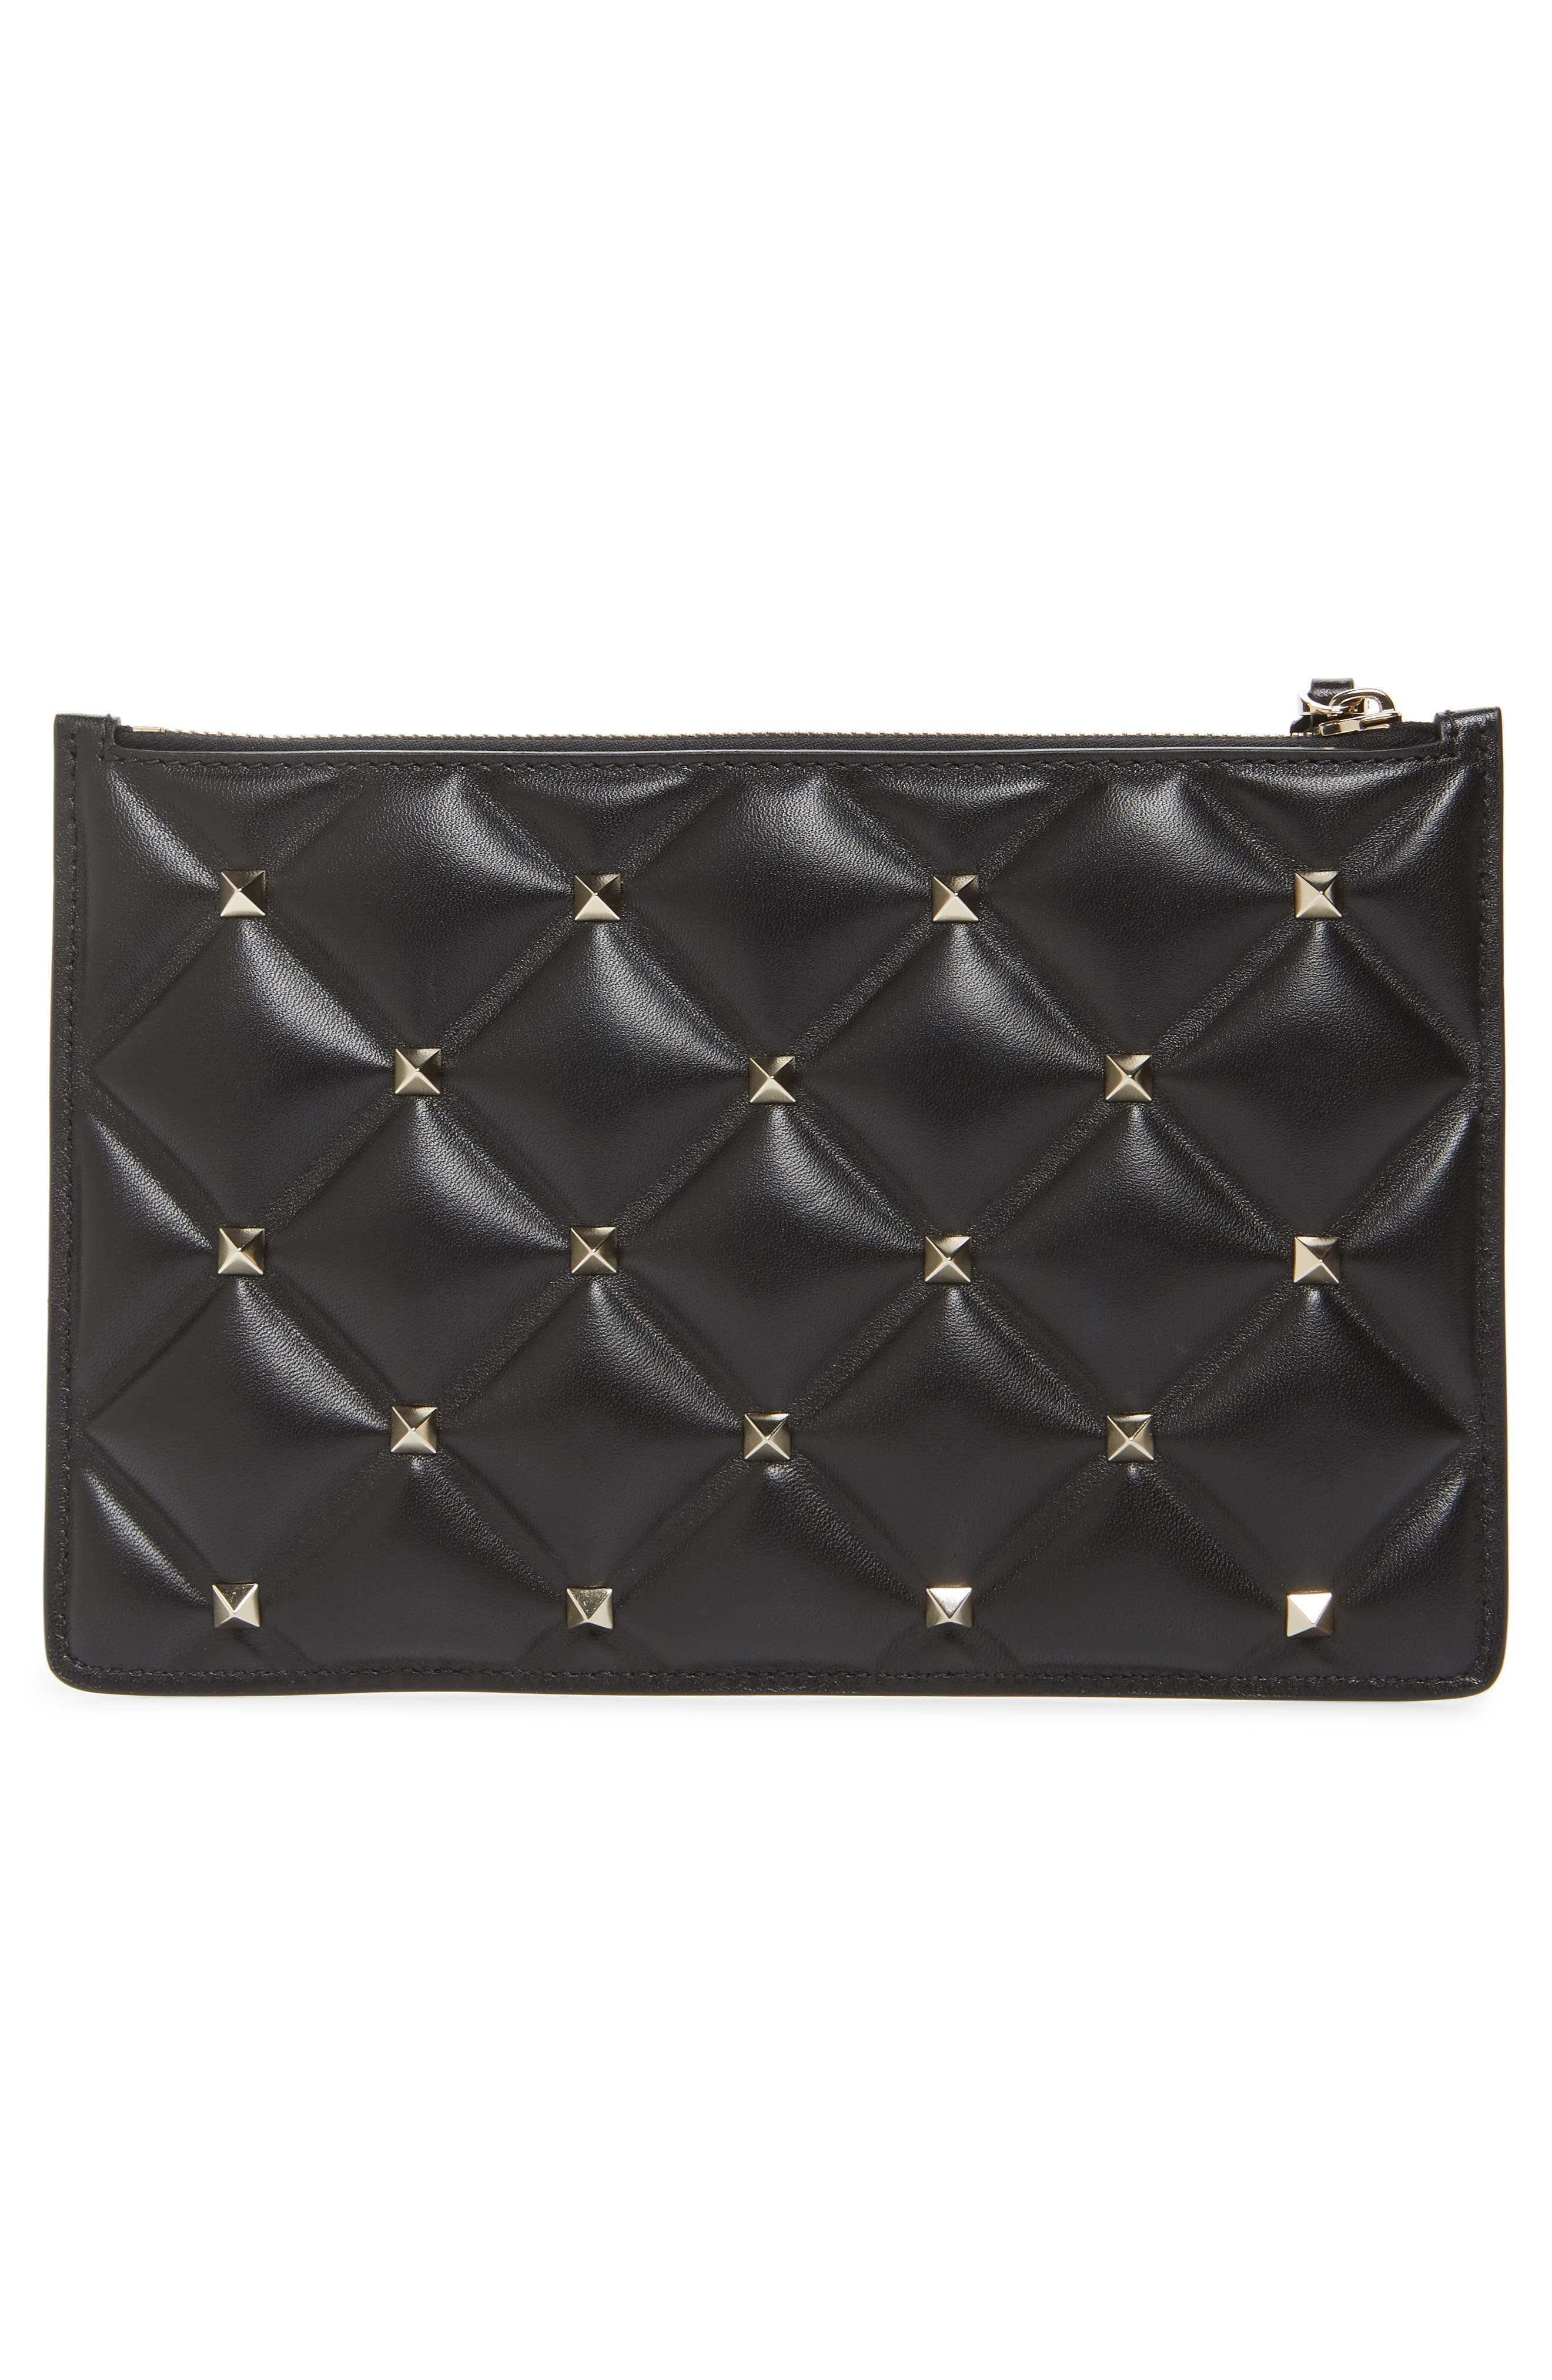 Medium Candystud Leather Pouch,                             Alternate thumbnail 3, color,                             NERO